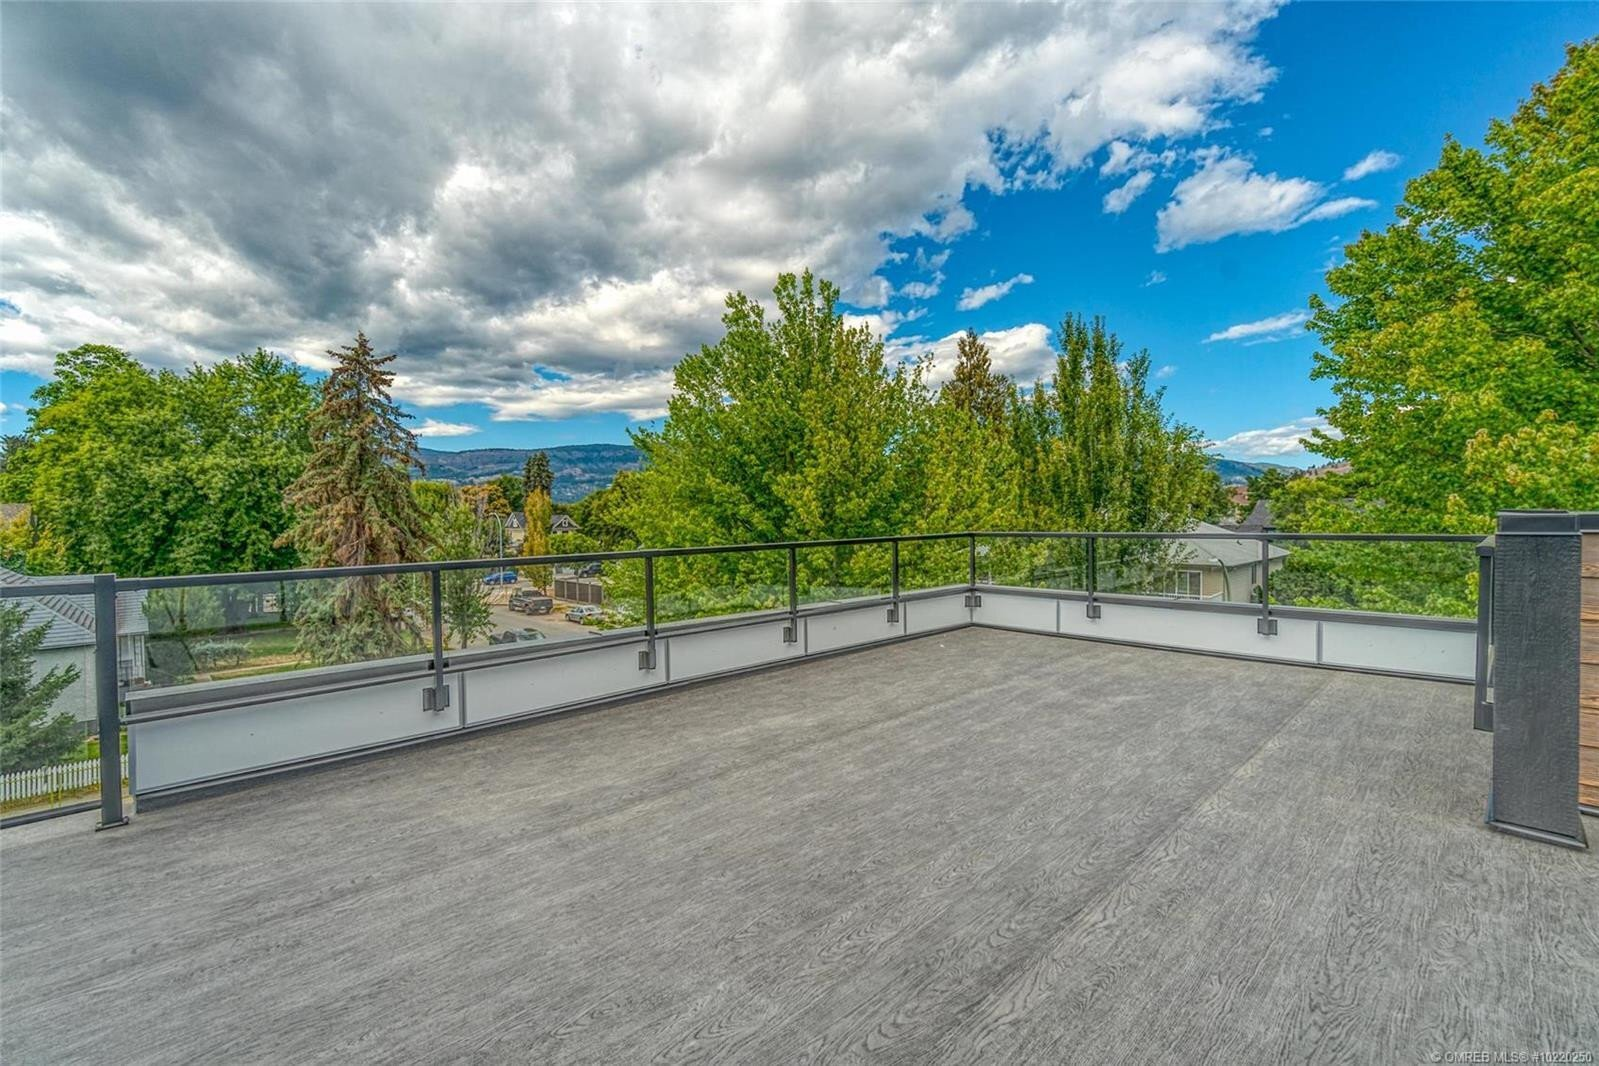 Townhouse for sale at 937 Borden Ave Unit 1 Kelowna British Columbia - MLS: 10220250